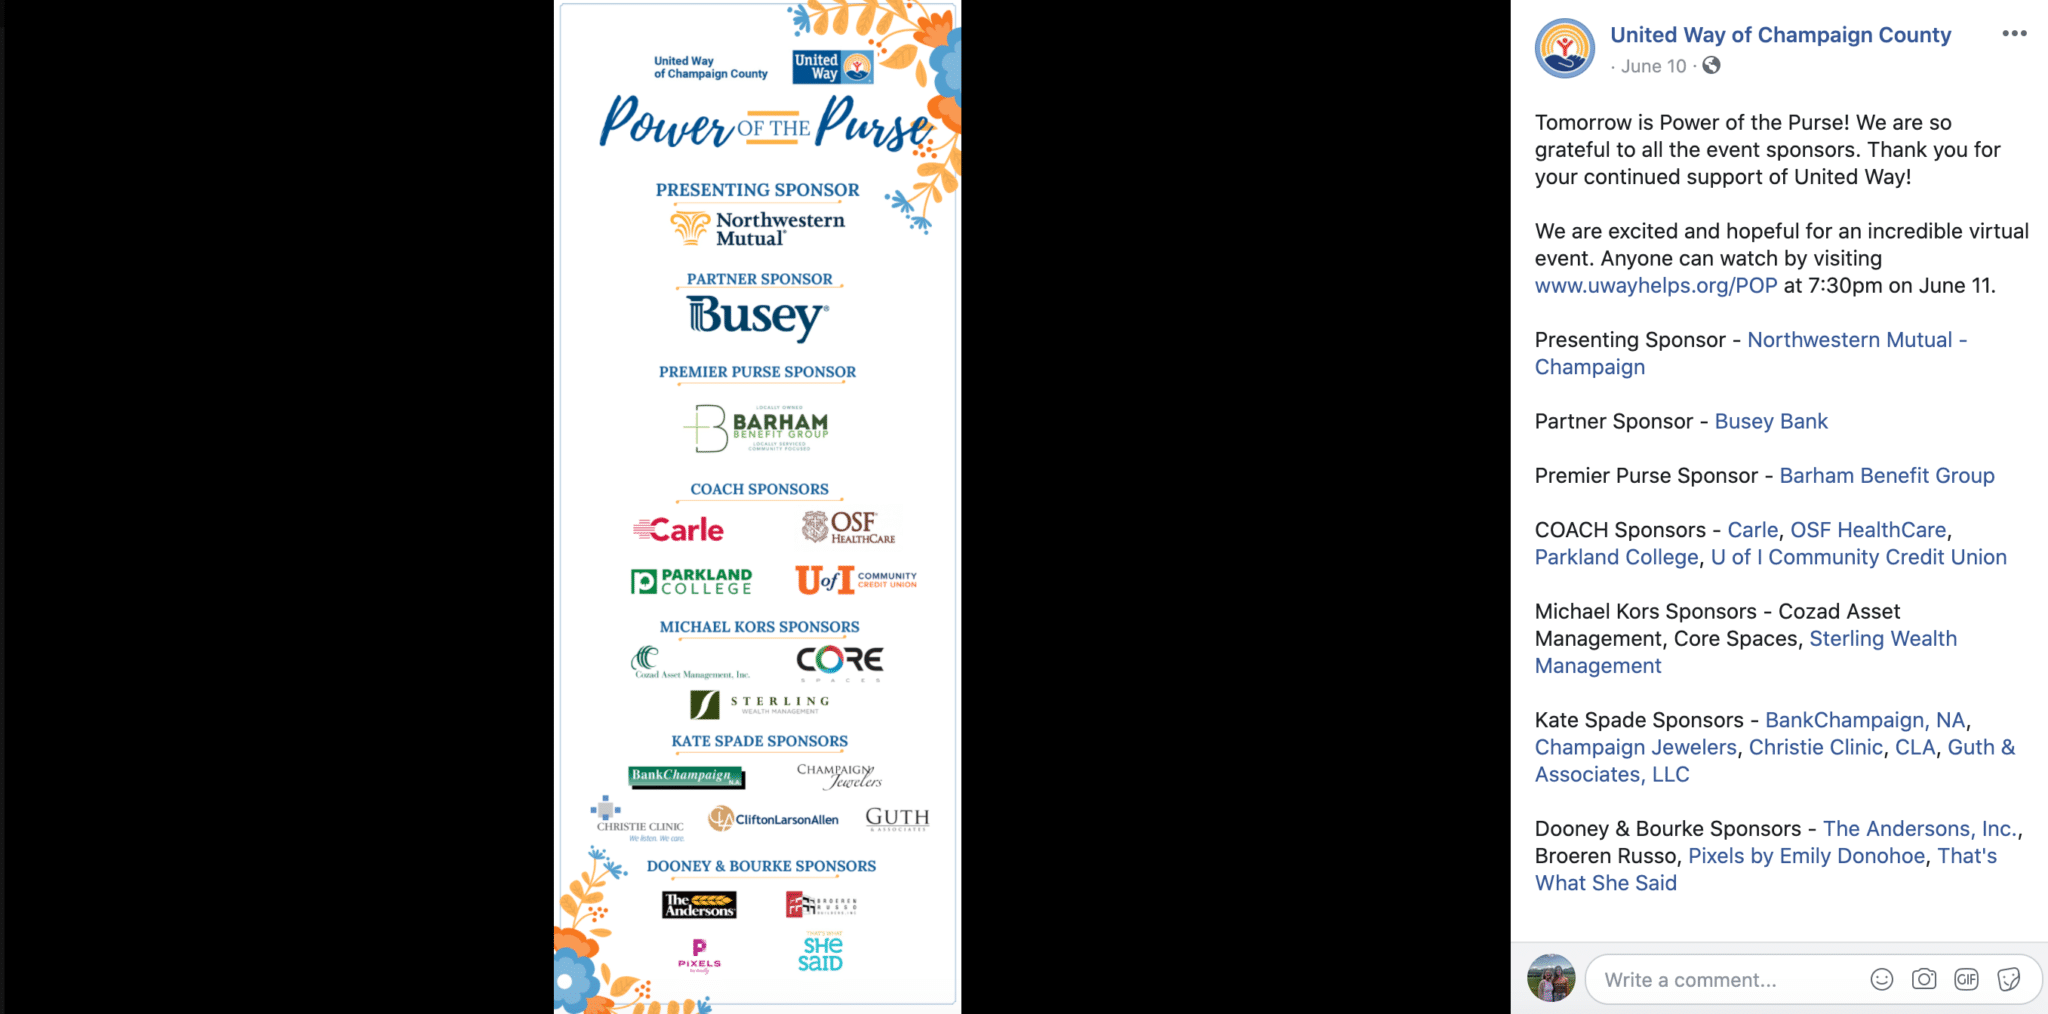 United-Way-of-Champaign-County-Power-of-the-Purse-Sponsors